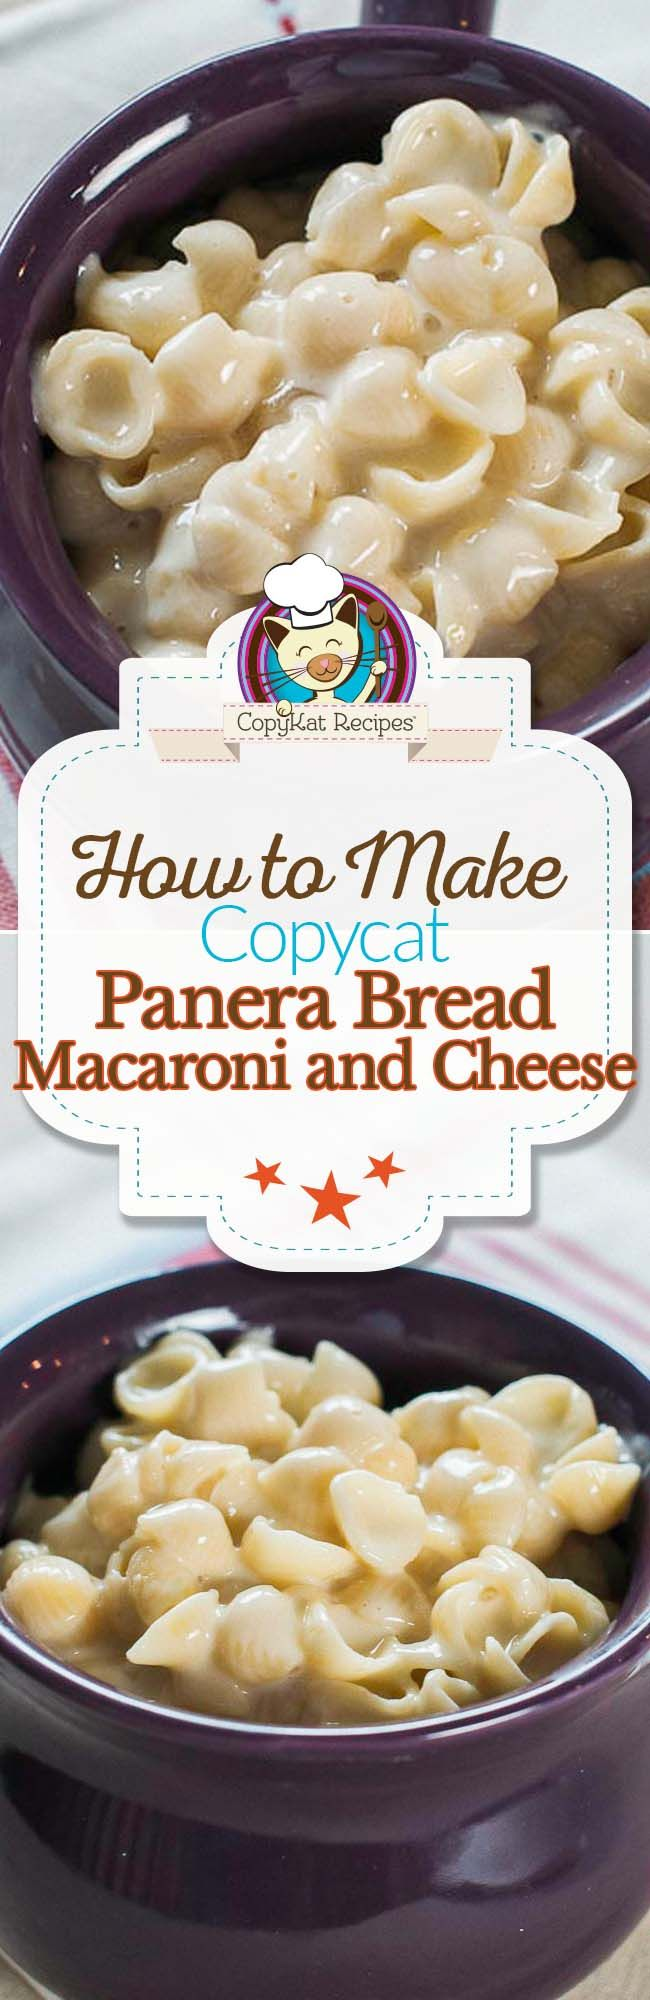 Copycat Panera Bread Macaroni and Cheese